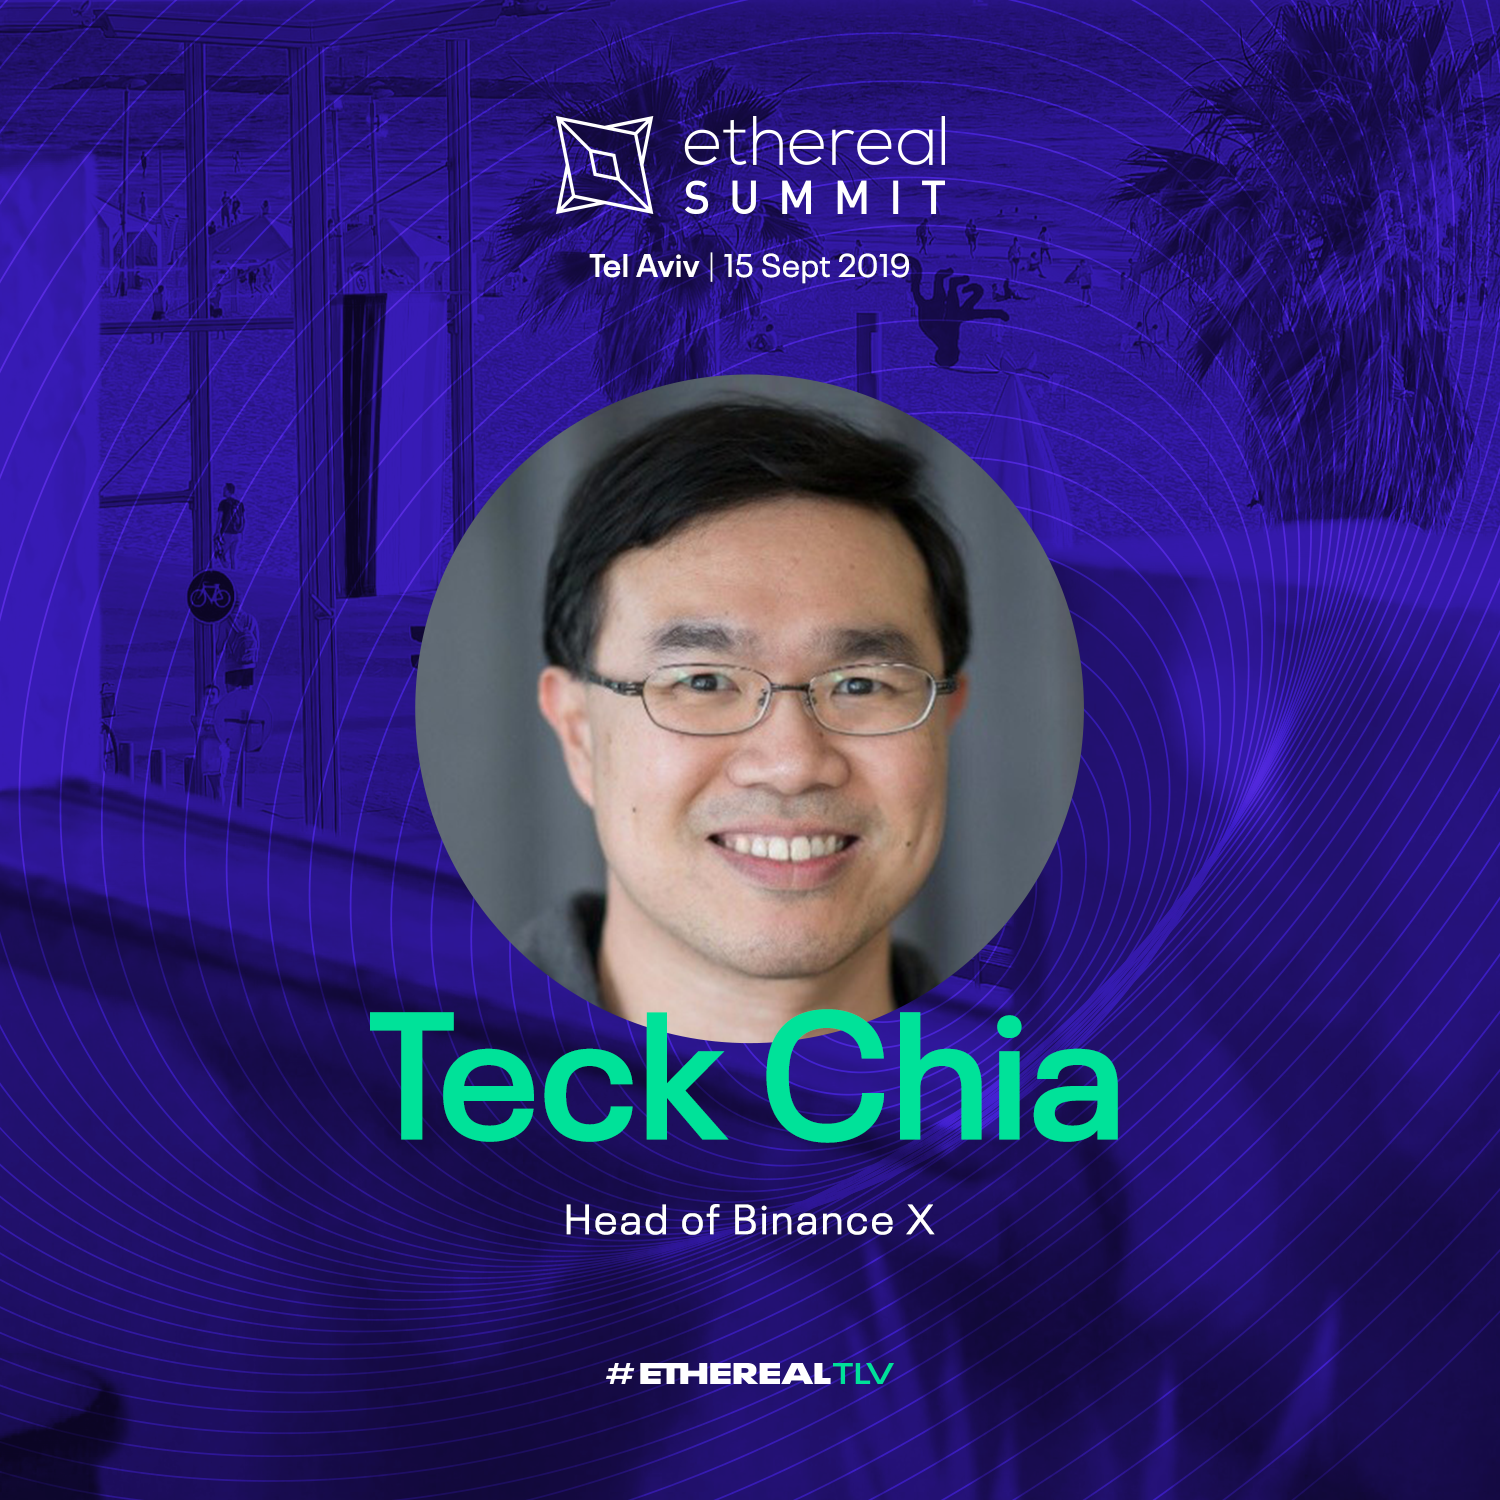 ethereal-tlv-2019-speaker-cards-square-teck-chia.png